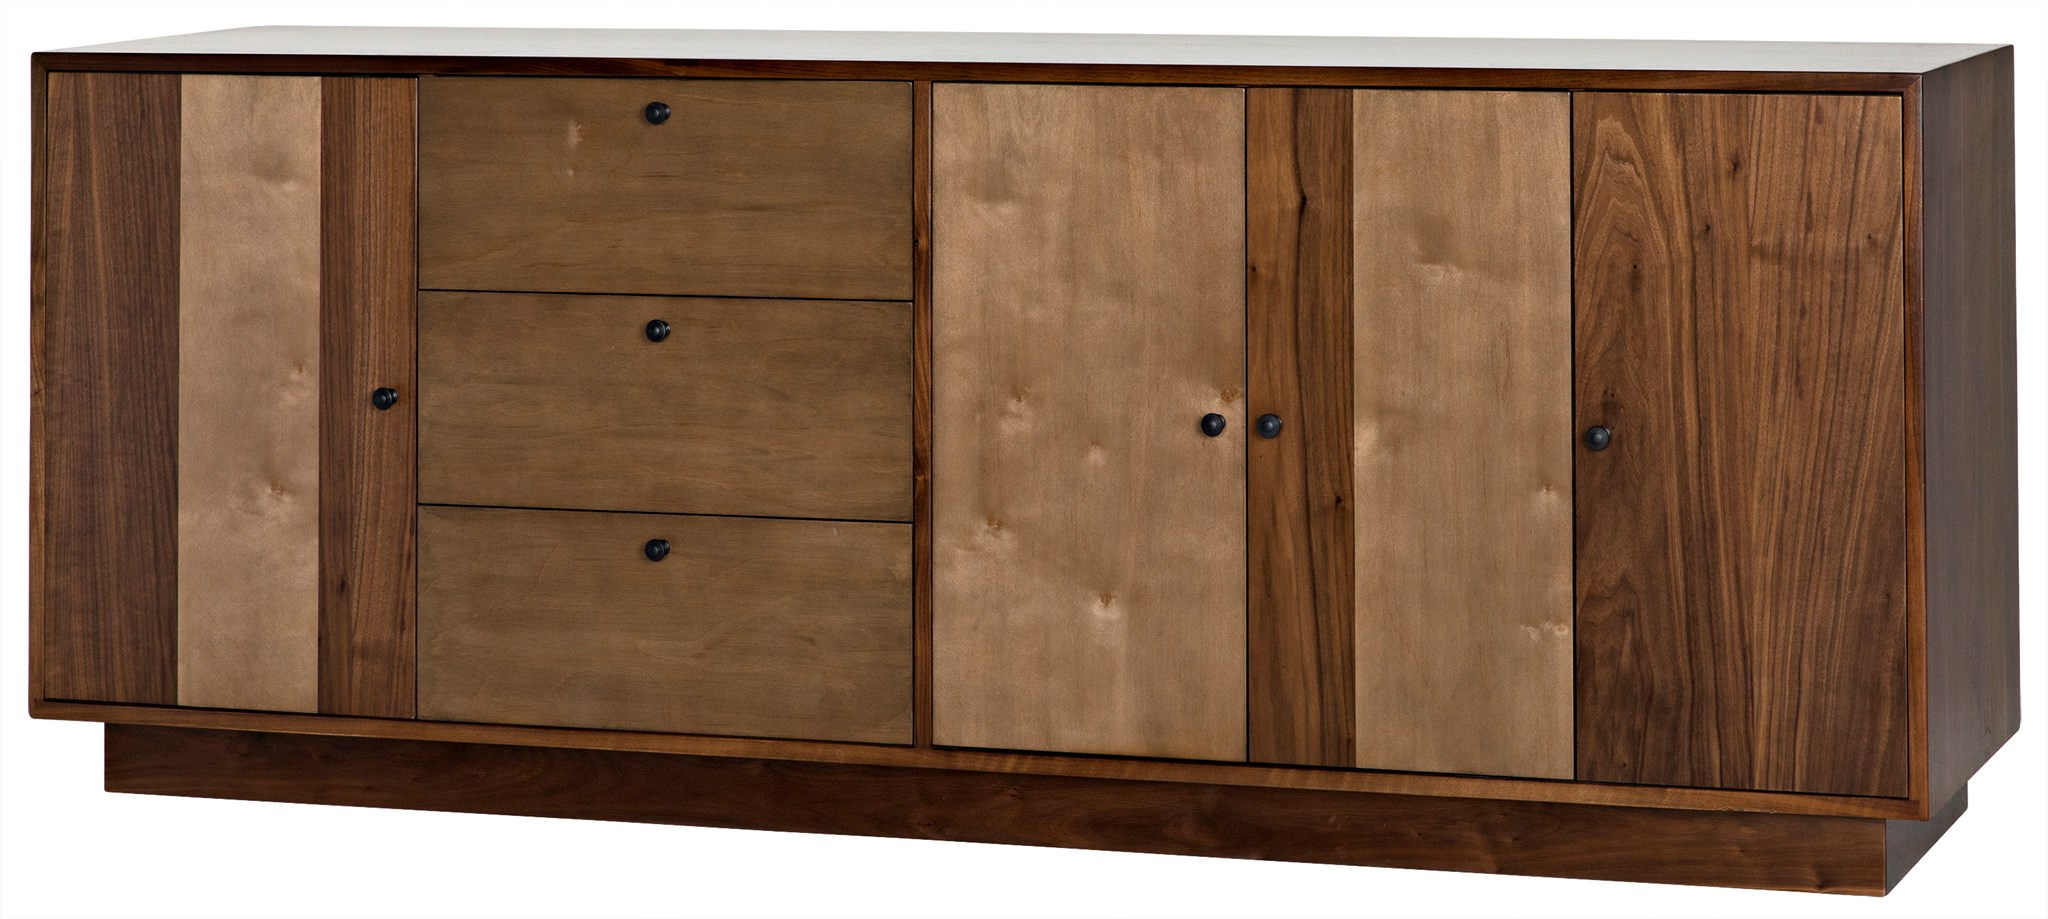 Cfc :: For Preferred Walnut Finish 4 Door Sideboards (View 4 of 20)